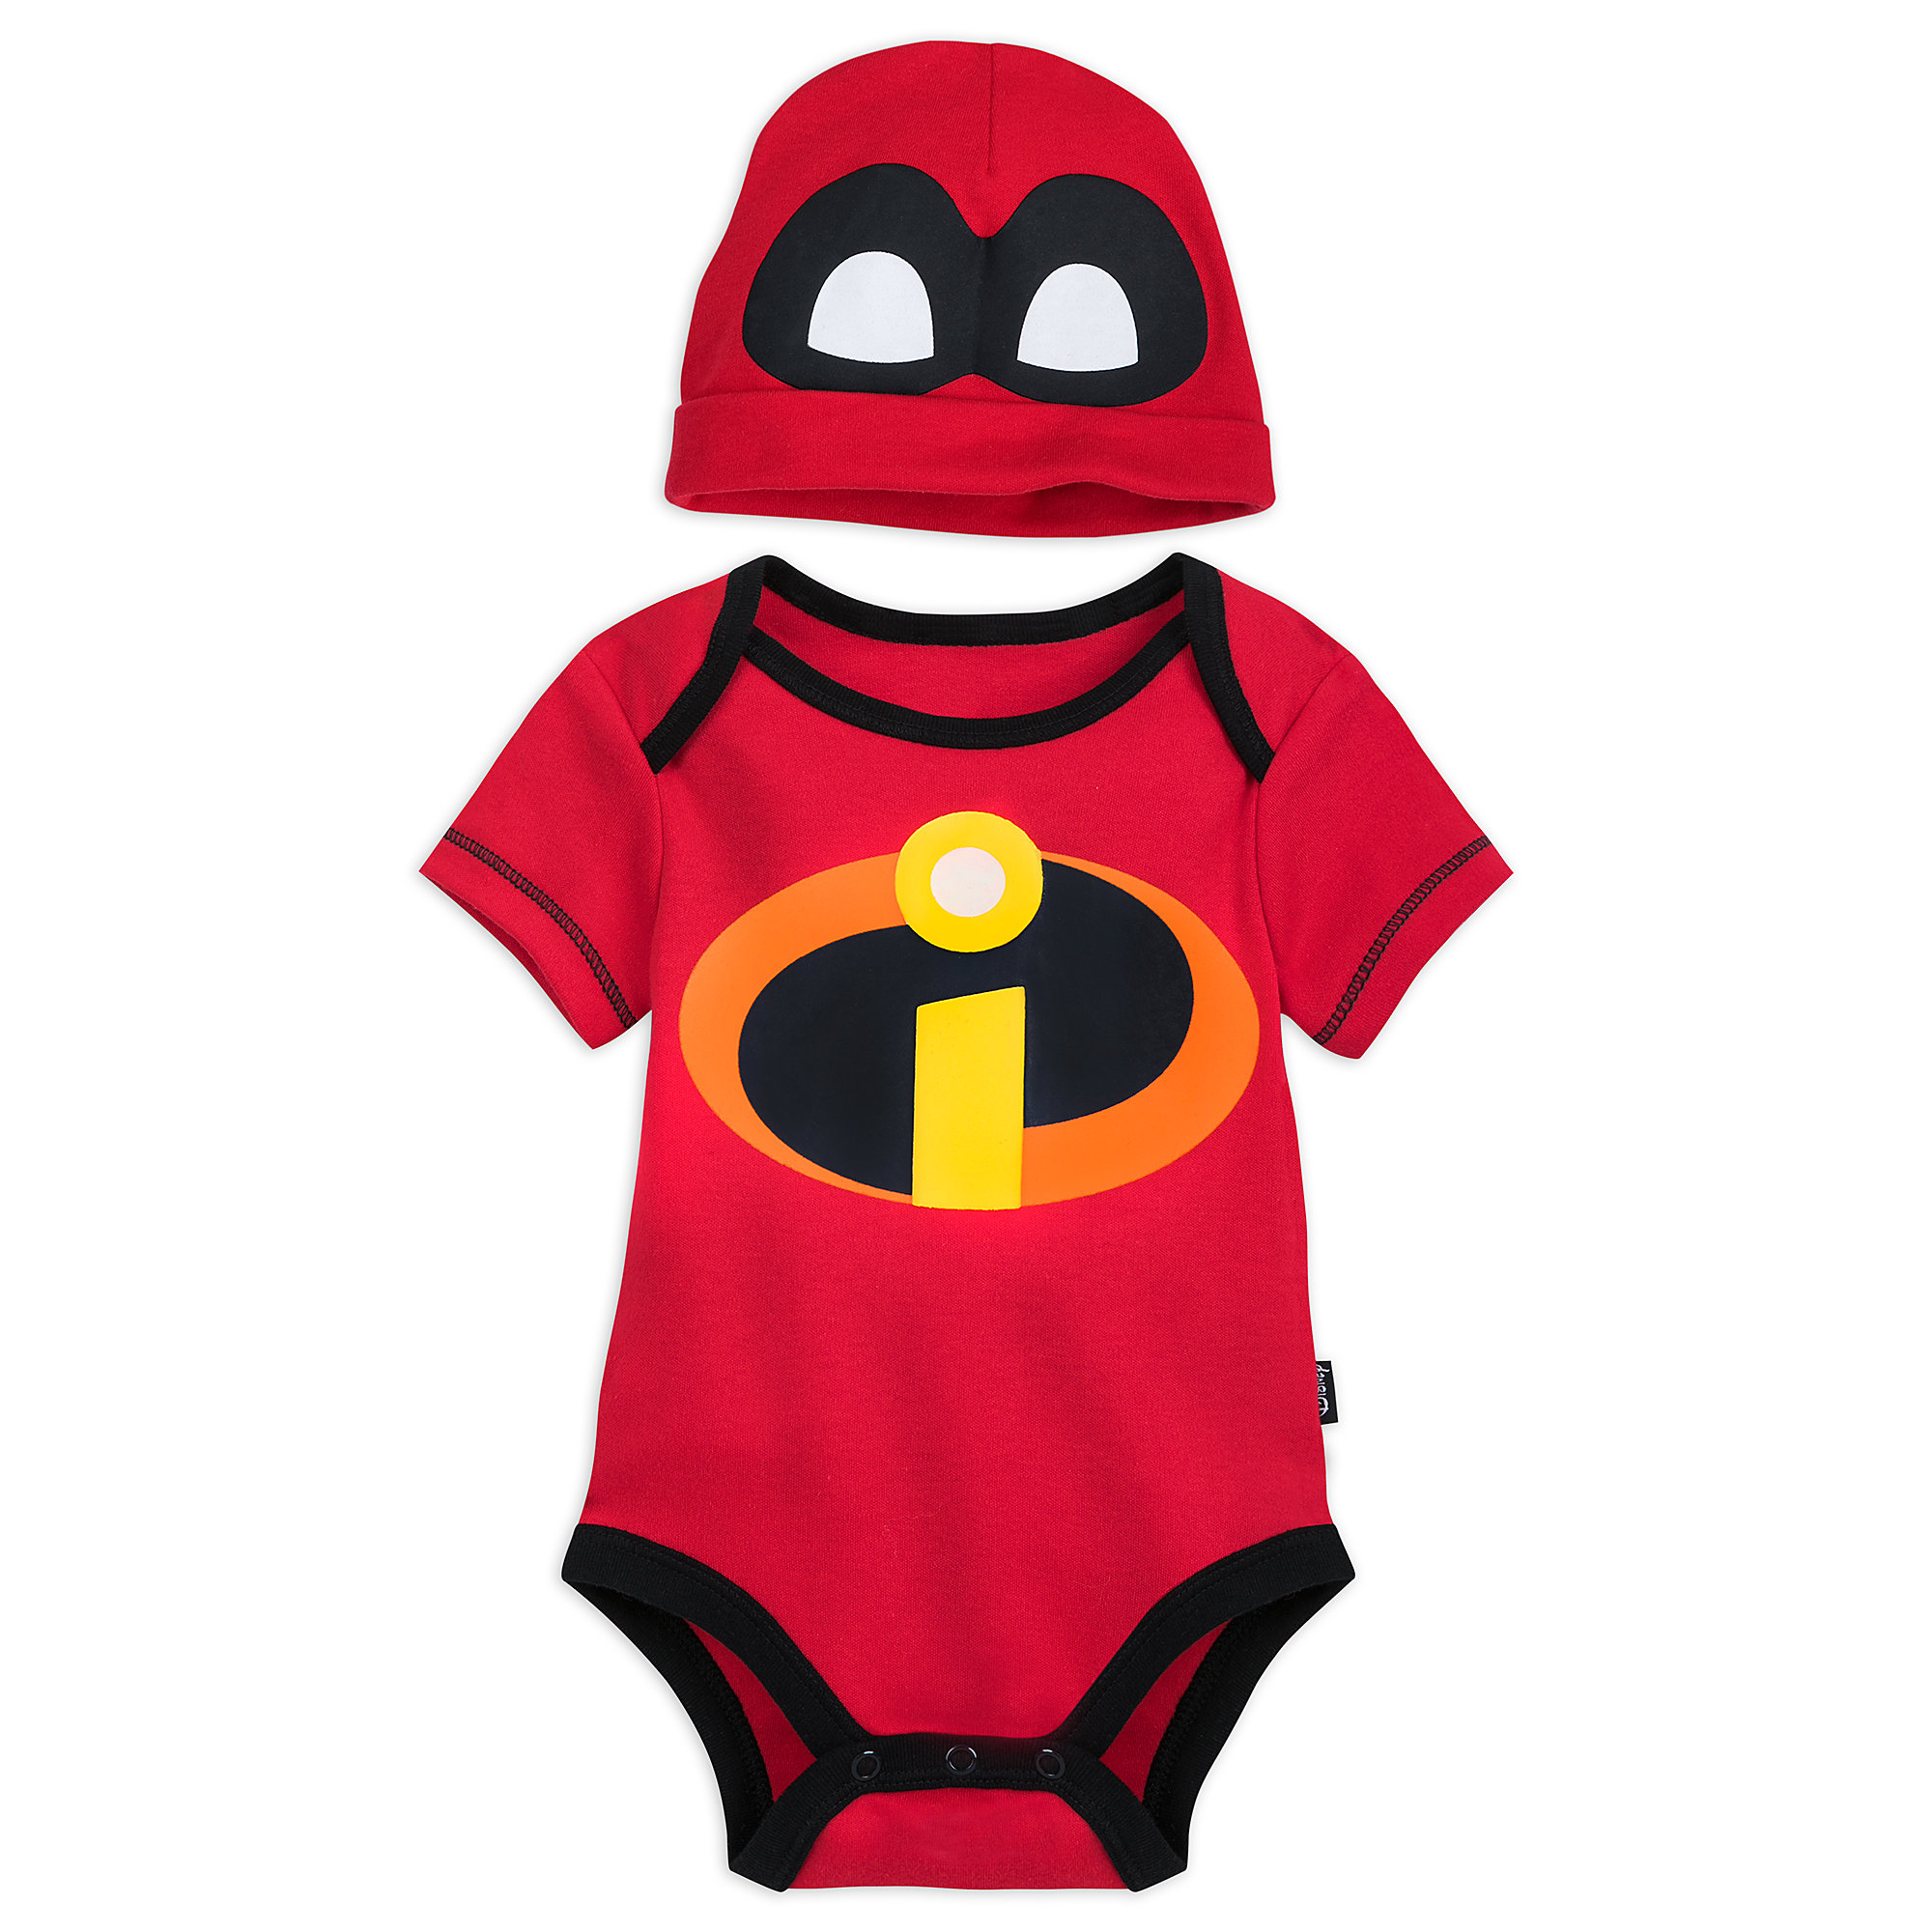 34ecb64271f Jack-Jack Costume Bodysuit and Hat Set for Baby - Incredibles 2 ...